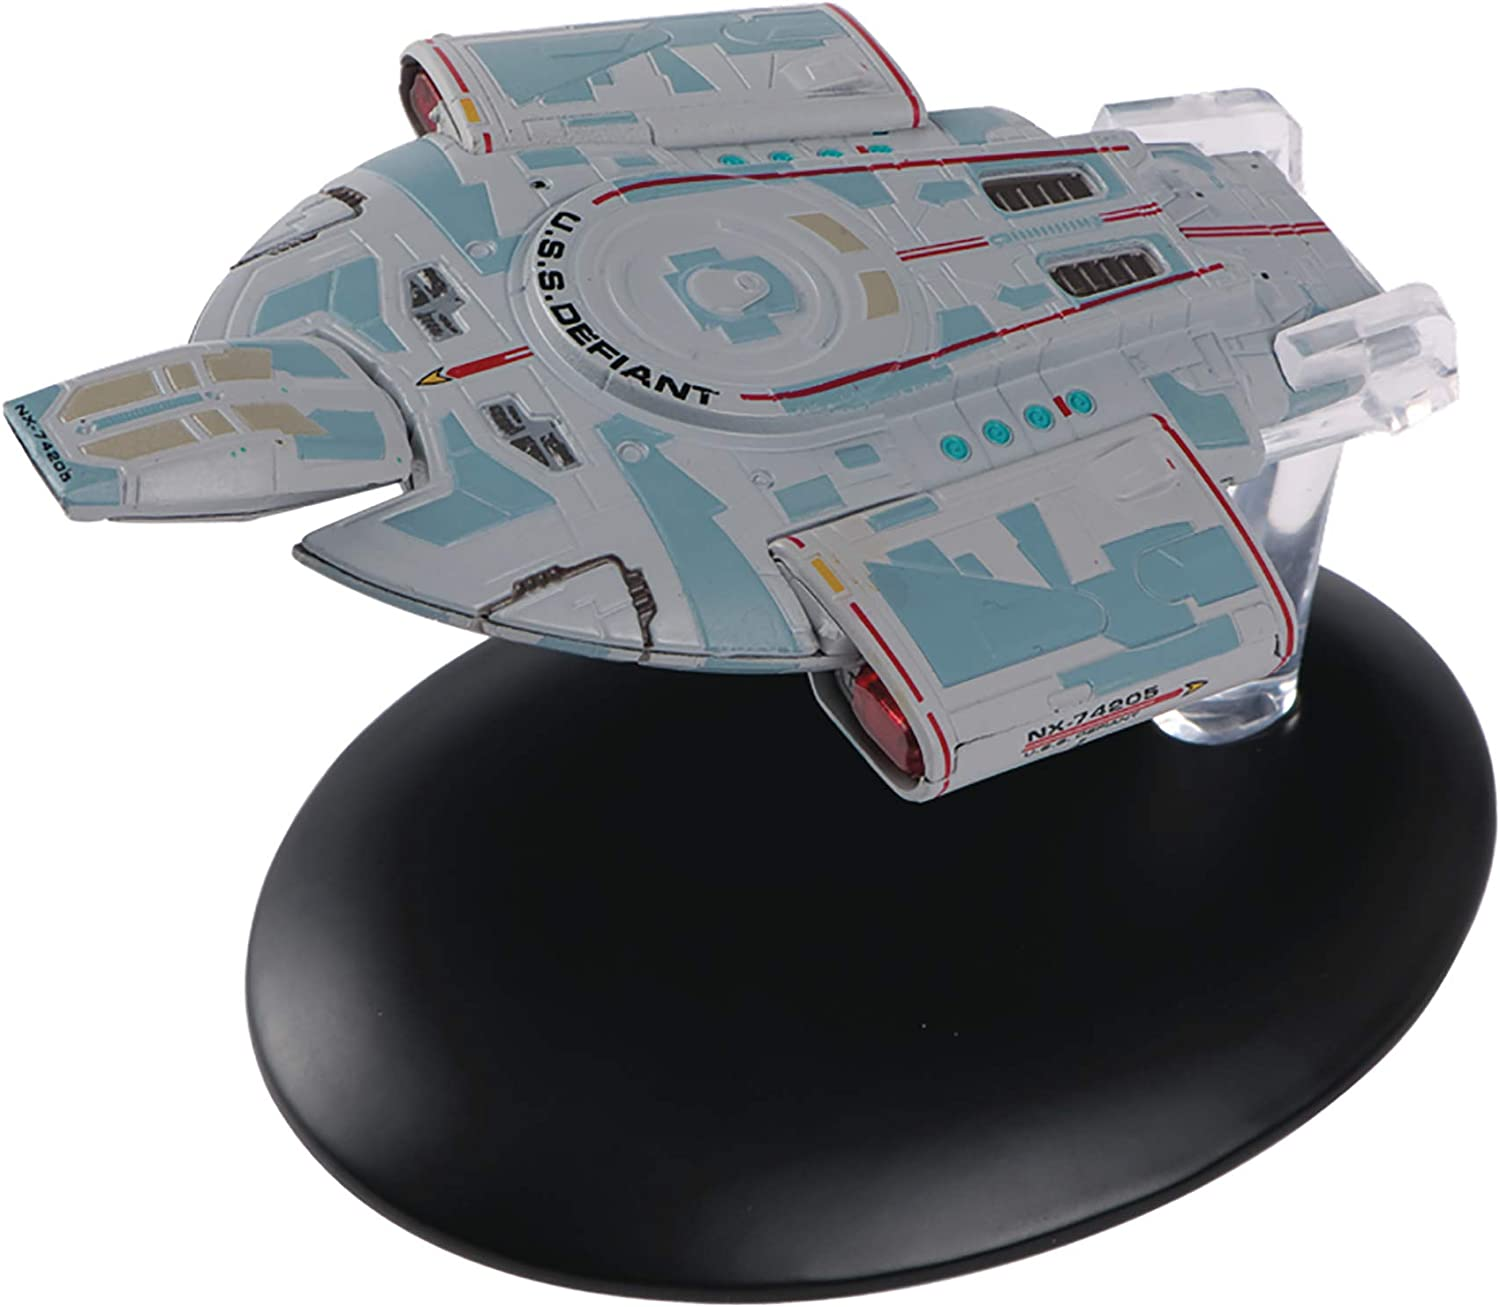 Star Trek The Official Starships Collection #7: USS Defiant NX-74205 Ship Replica